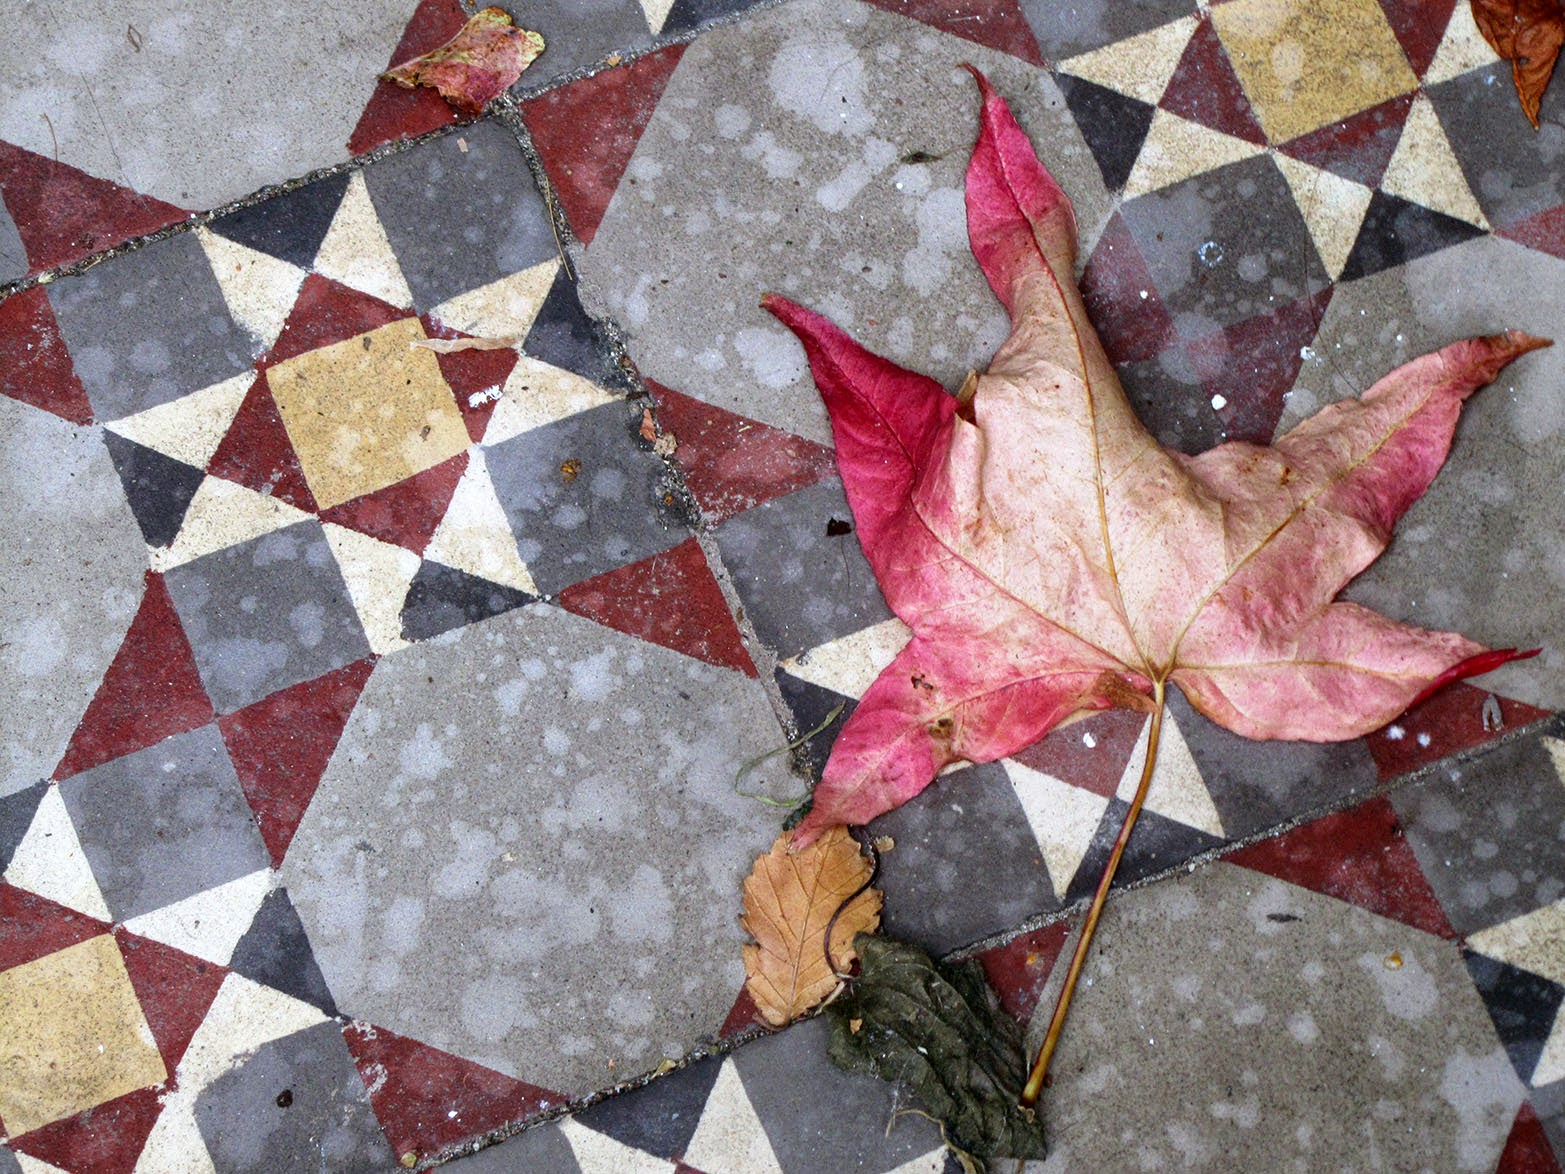 pink leaf on tiled floor